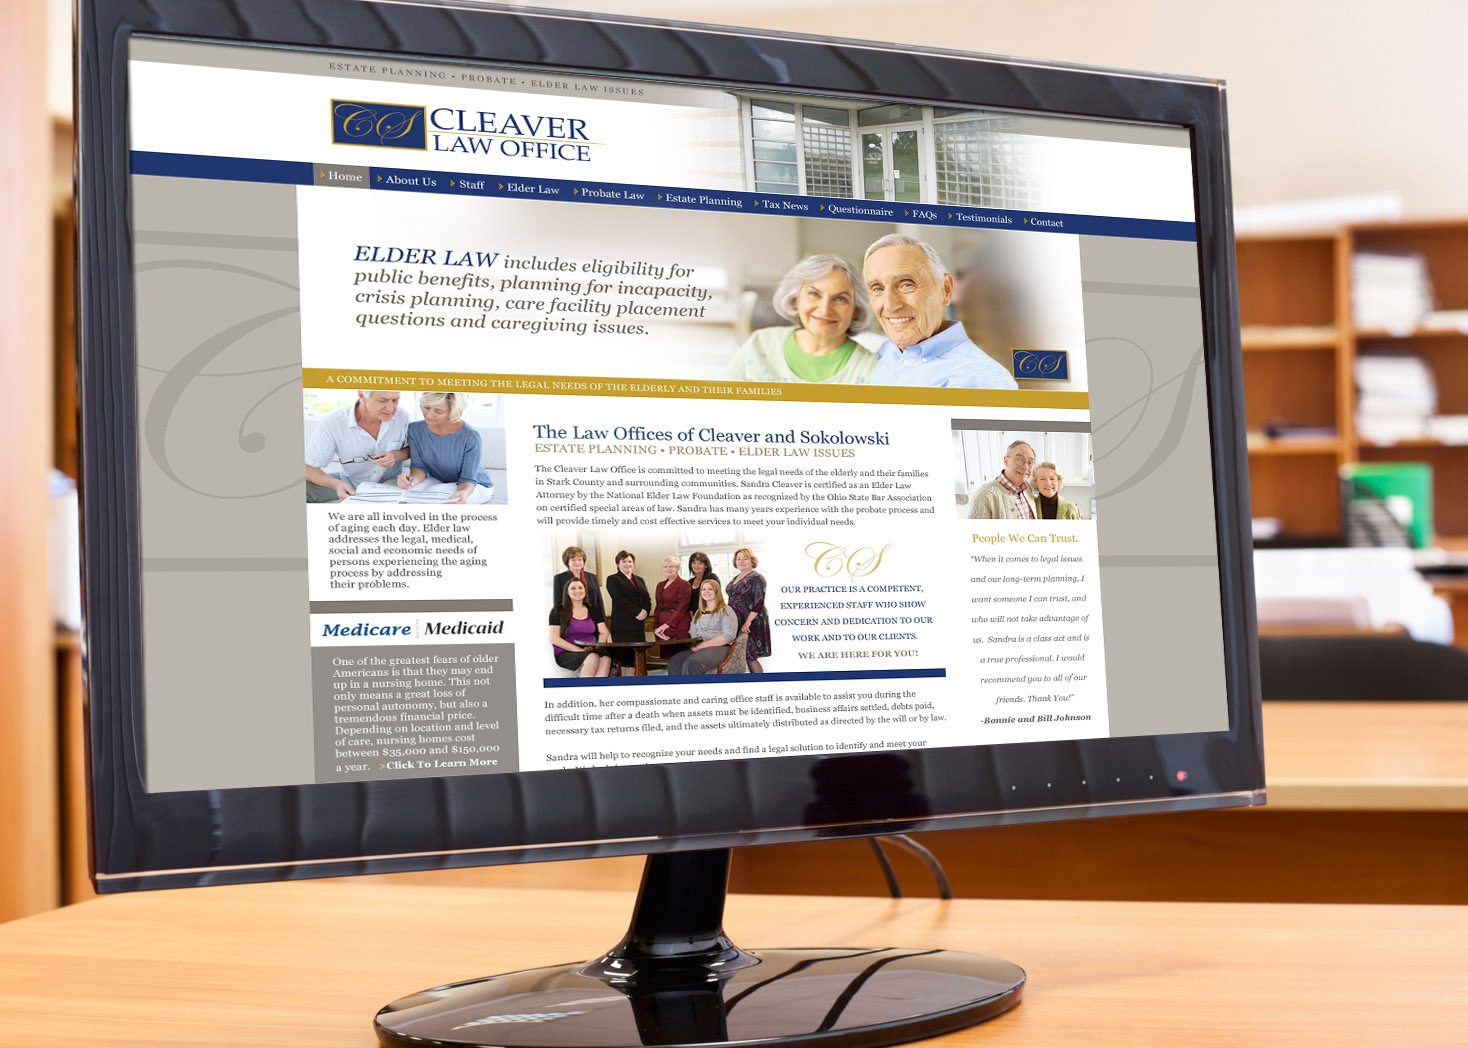 Cleaver Law Office - Website Design - Lehman Design